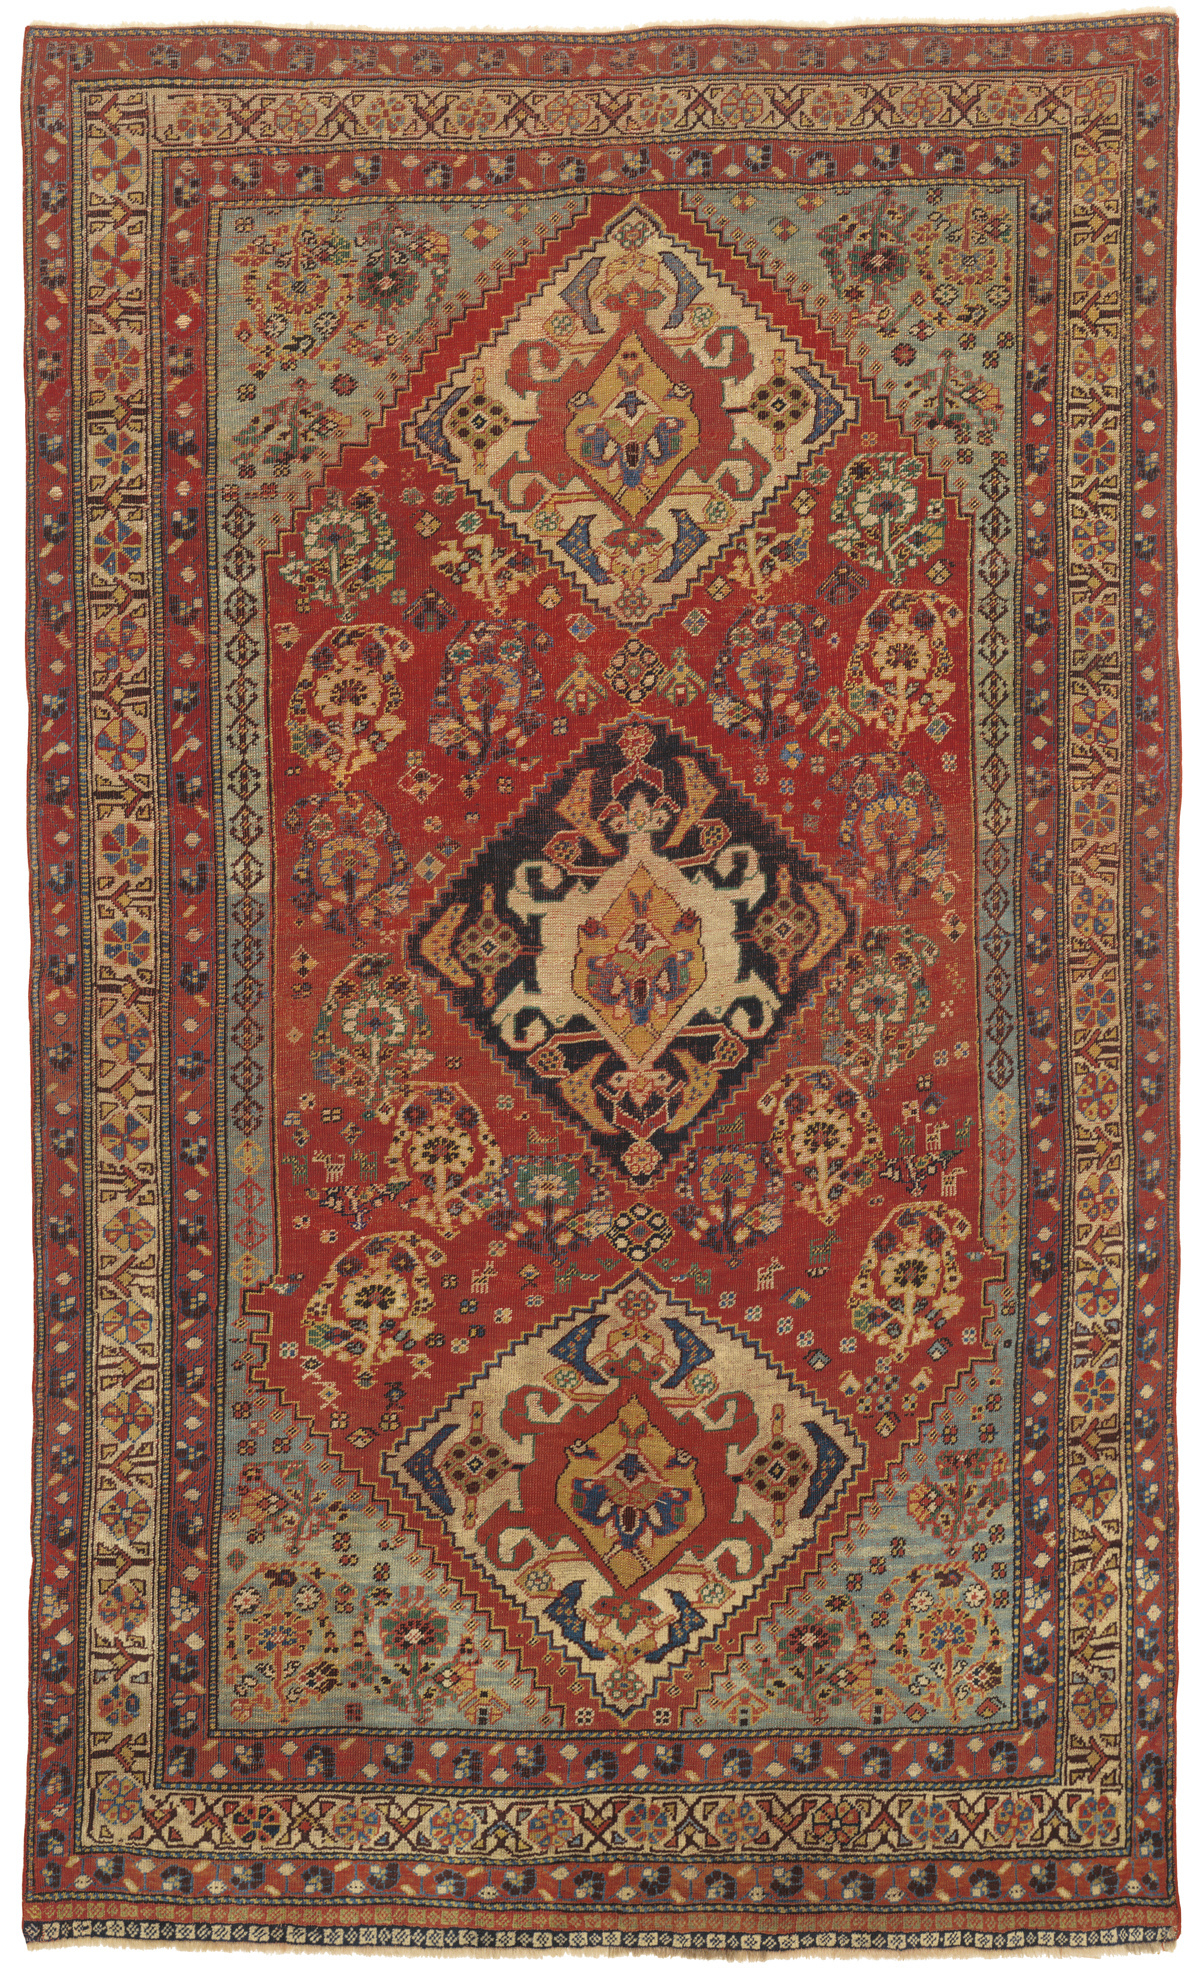 Claremont Rug Company Exhibits Best Of The Best Antique Rugs Sold